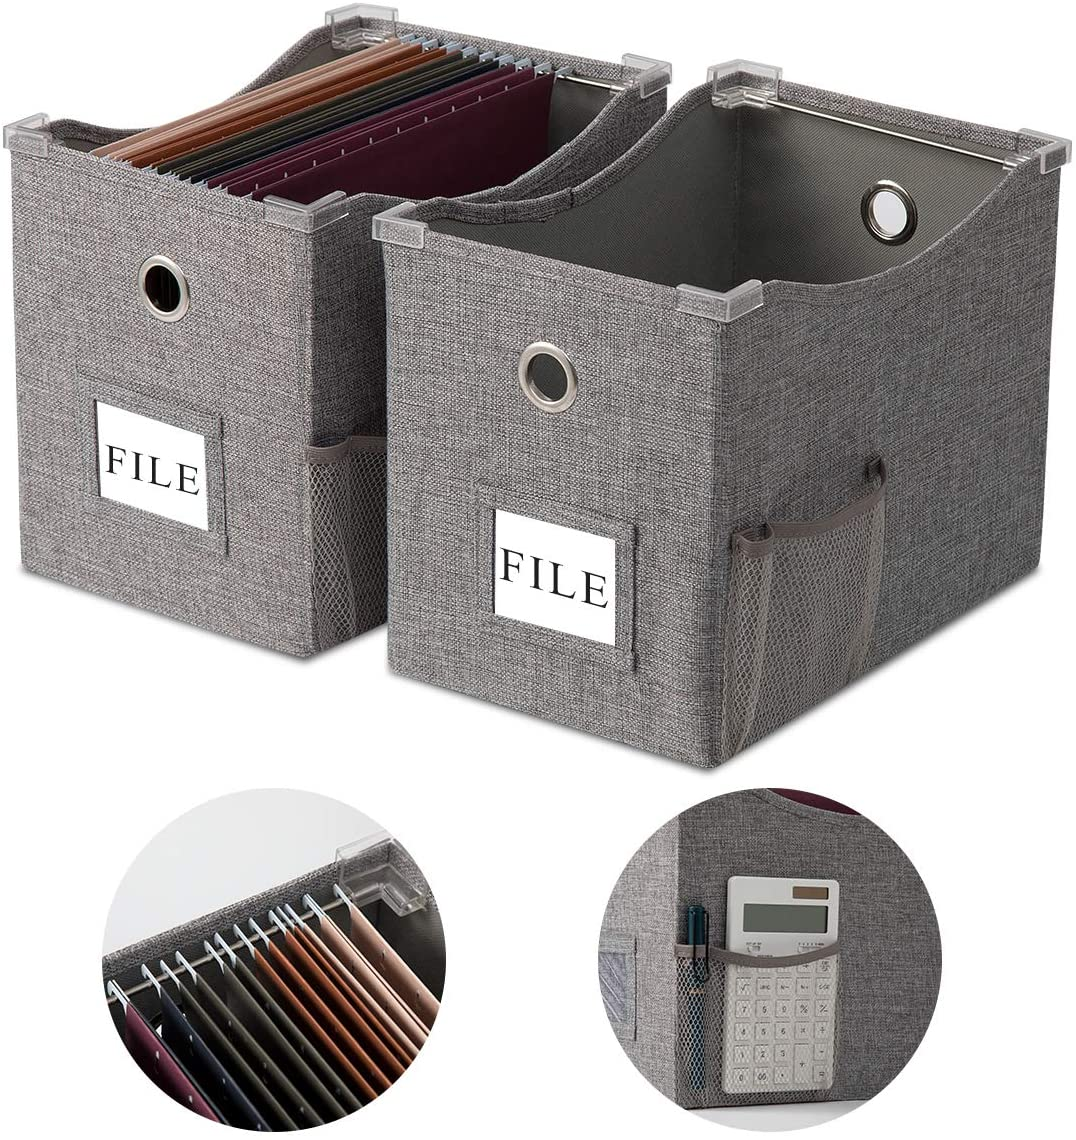 service Collapsible File Box Storage Special price for a limited time Organizer 2 Letter size Deco PACK